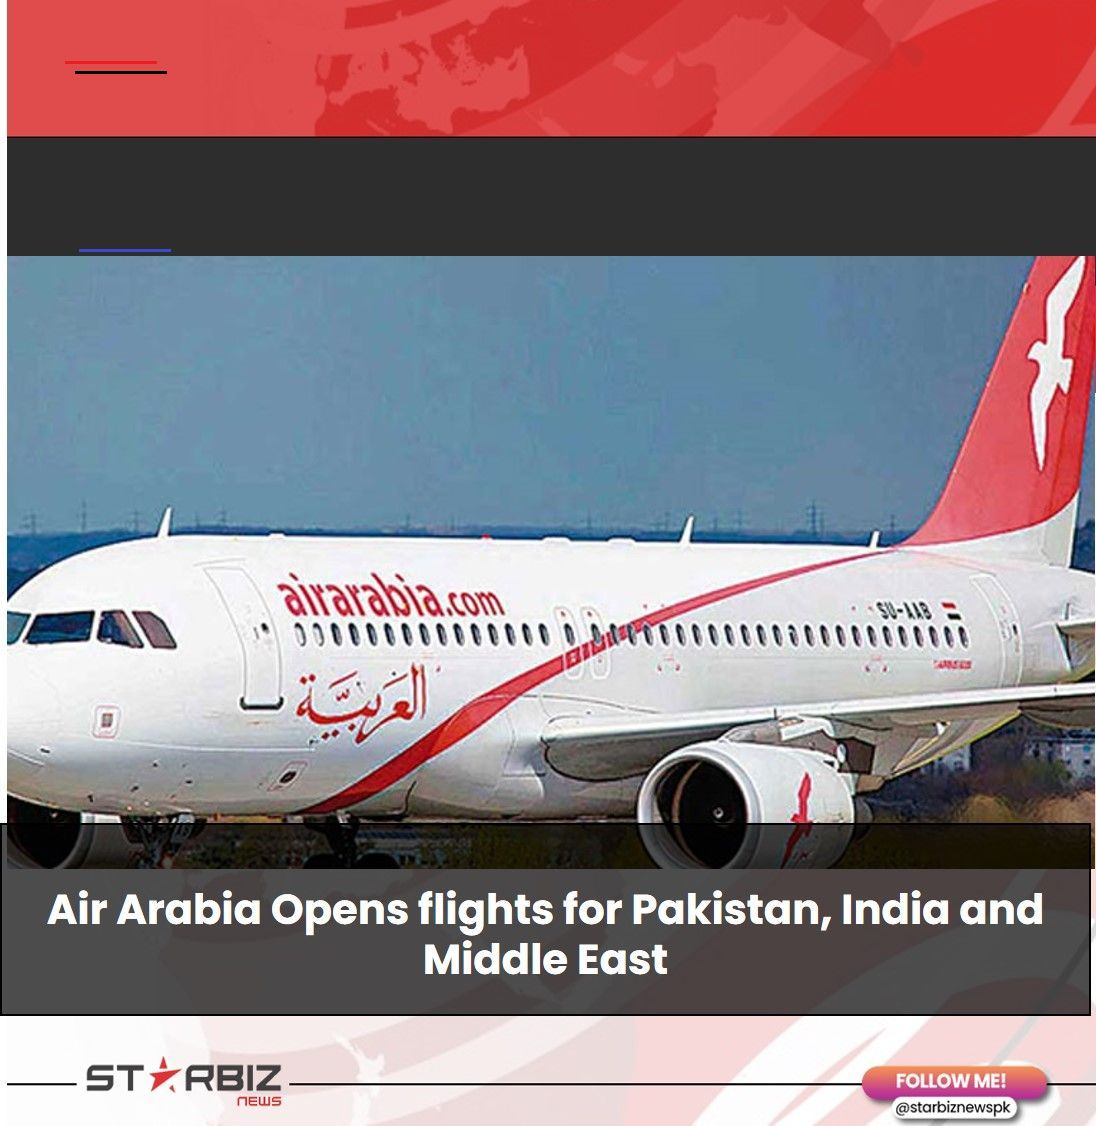 Air Arabia Opens flights for Pakistan, India and Middle